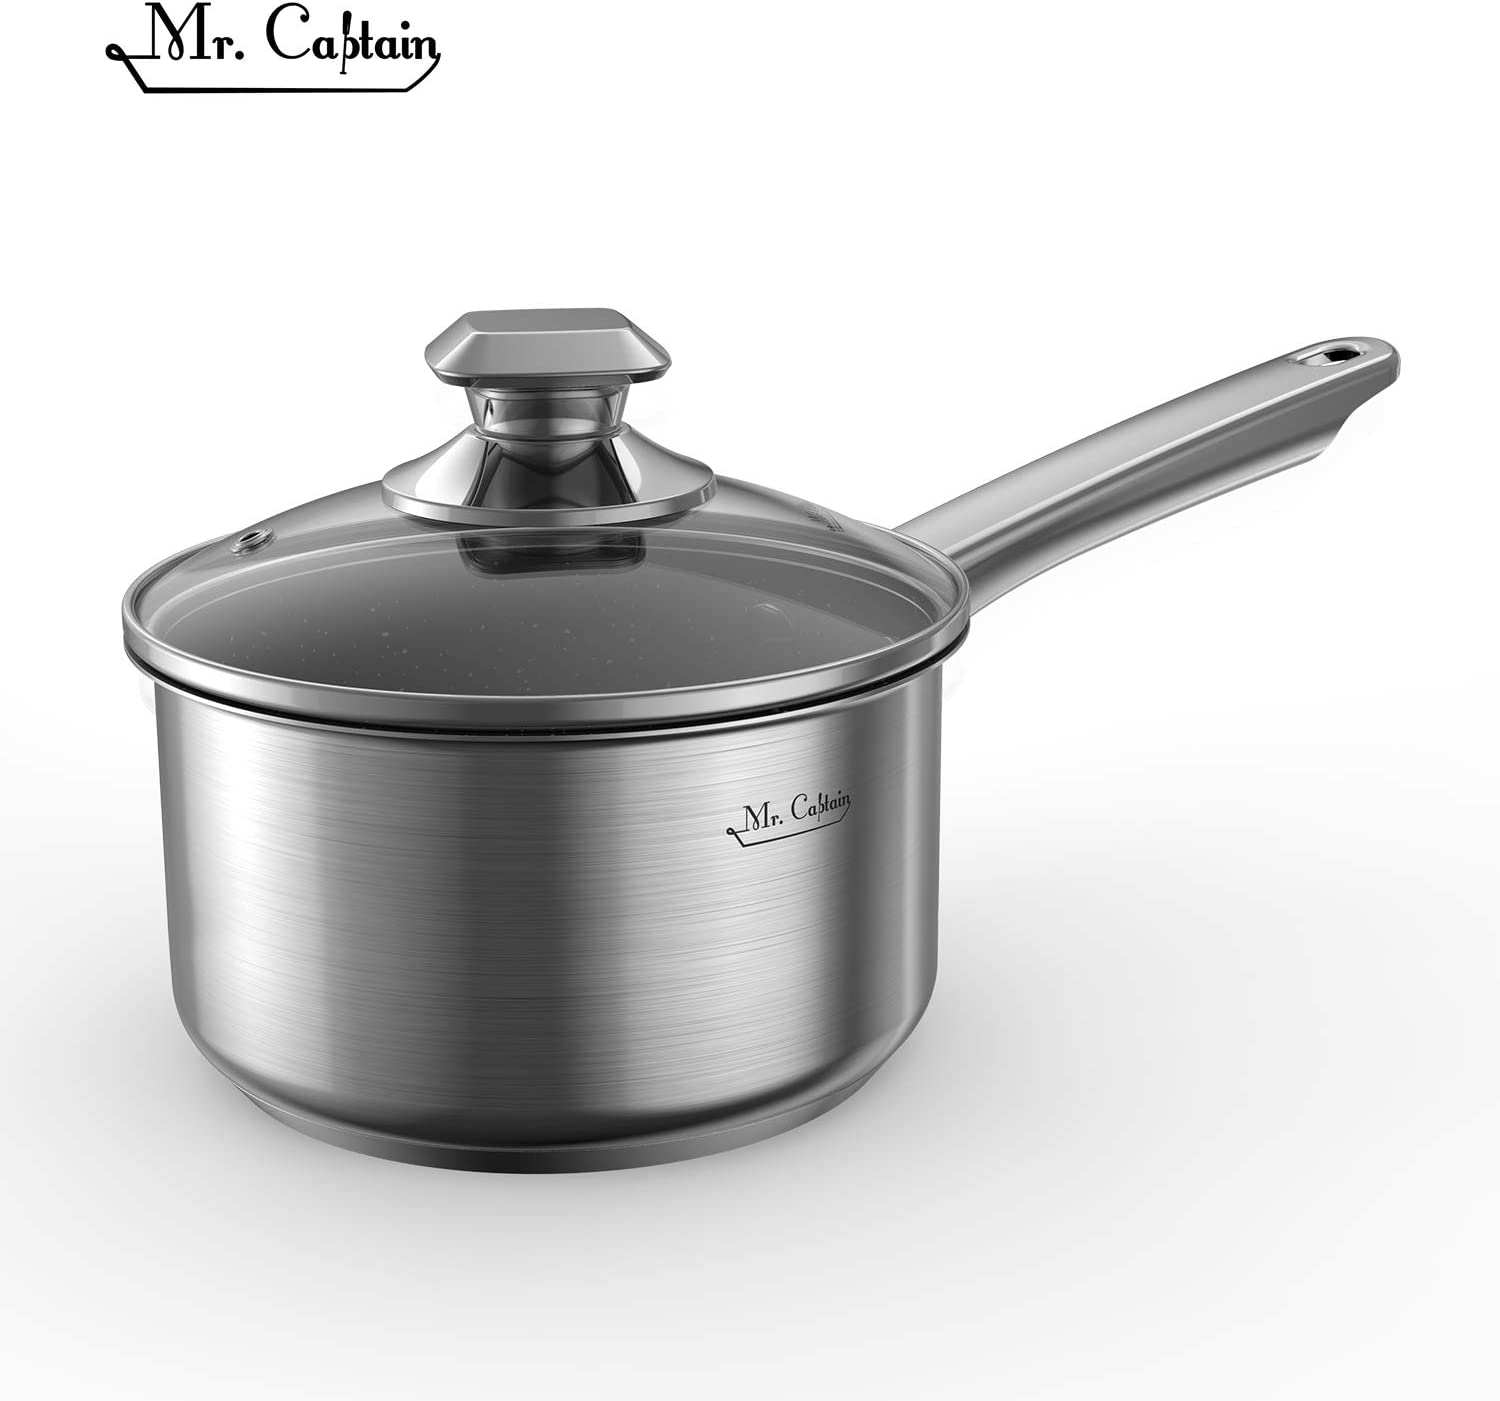 Mr Captain Nonstick Saucepan With Lid, 2 Quart 18/10 Stainless Steel Sauce Pan, Stone-Derived Non-Stick Granite Coating Small Pot Induction Compatible Dishwasher Safe,Oven Safe